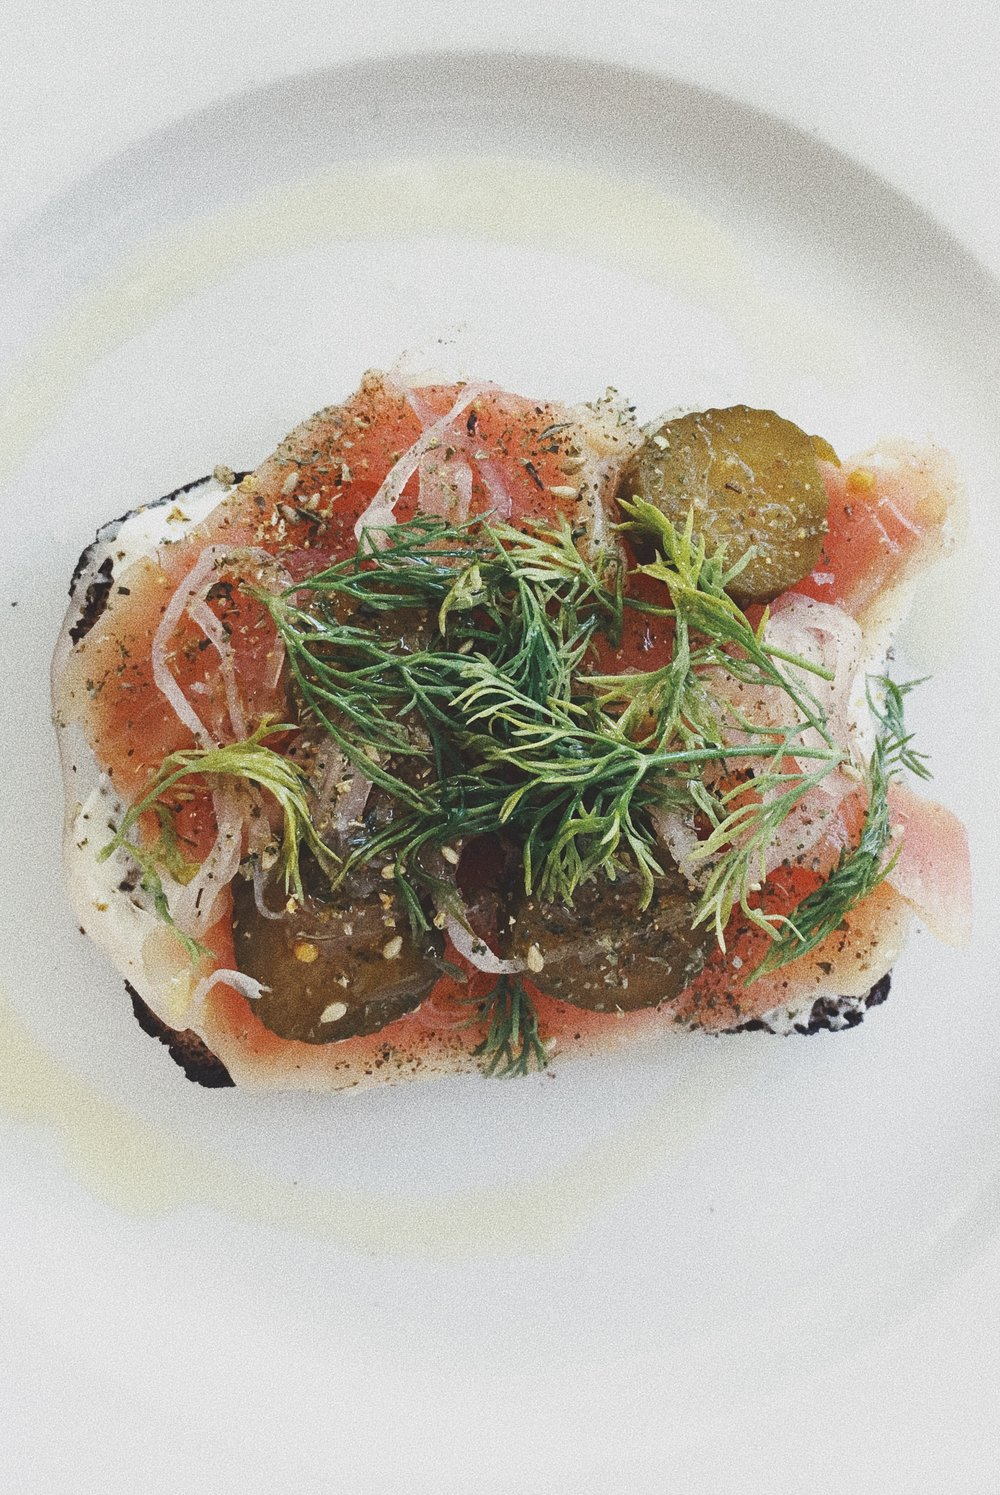 Lunch at the London Plane. Local smoked salmon on labneh with pickled red onion, cornichon and dill.